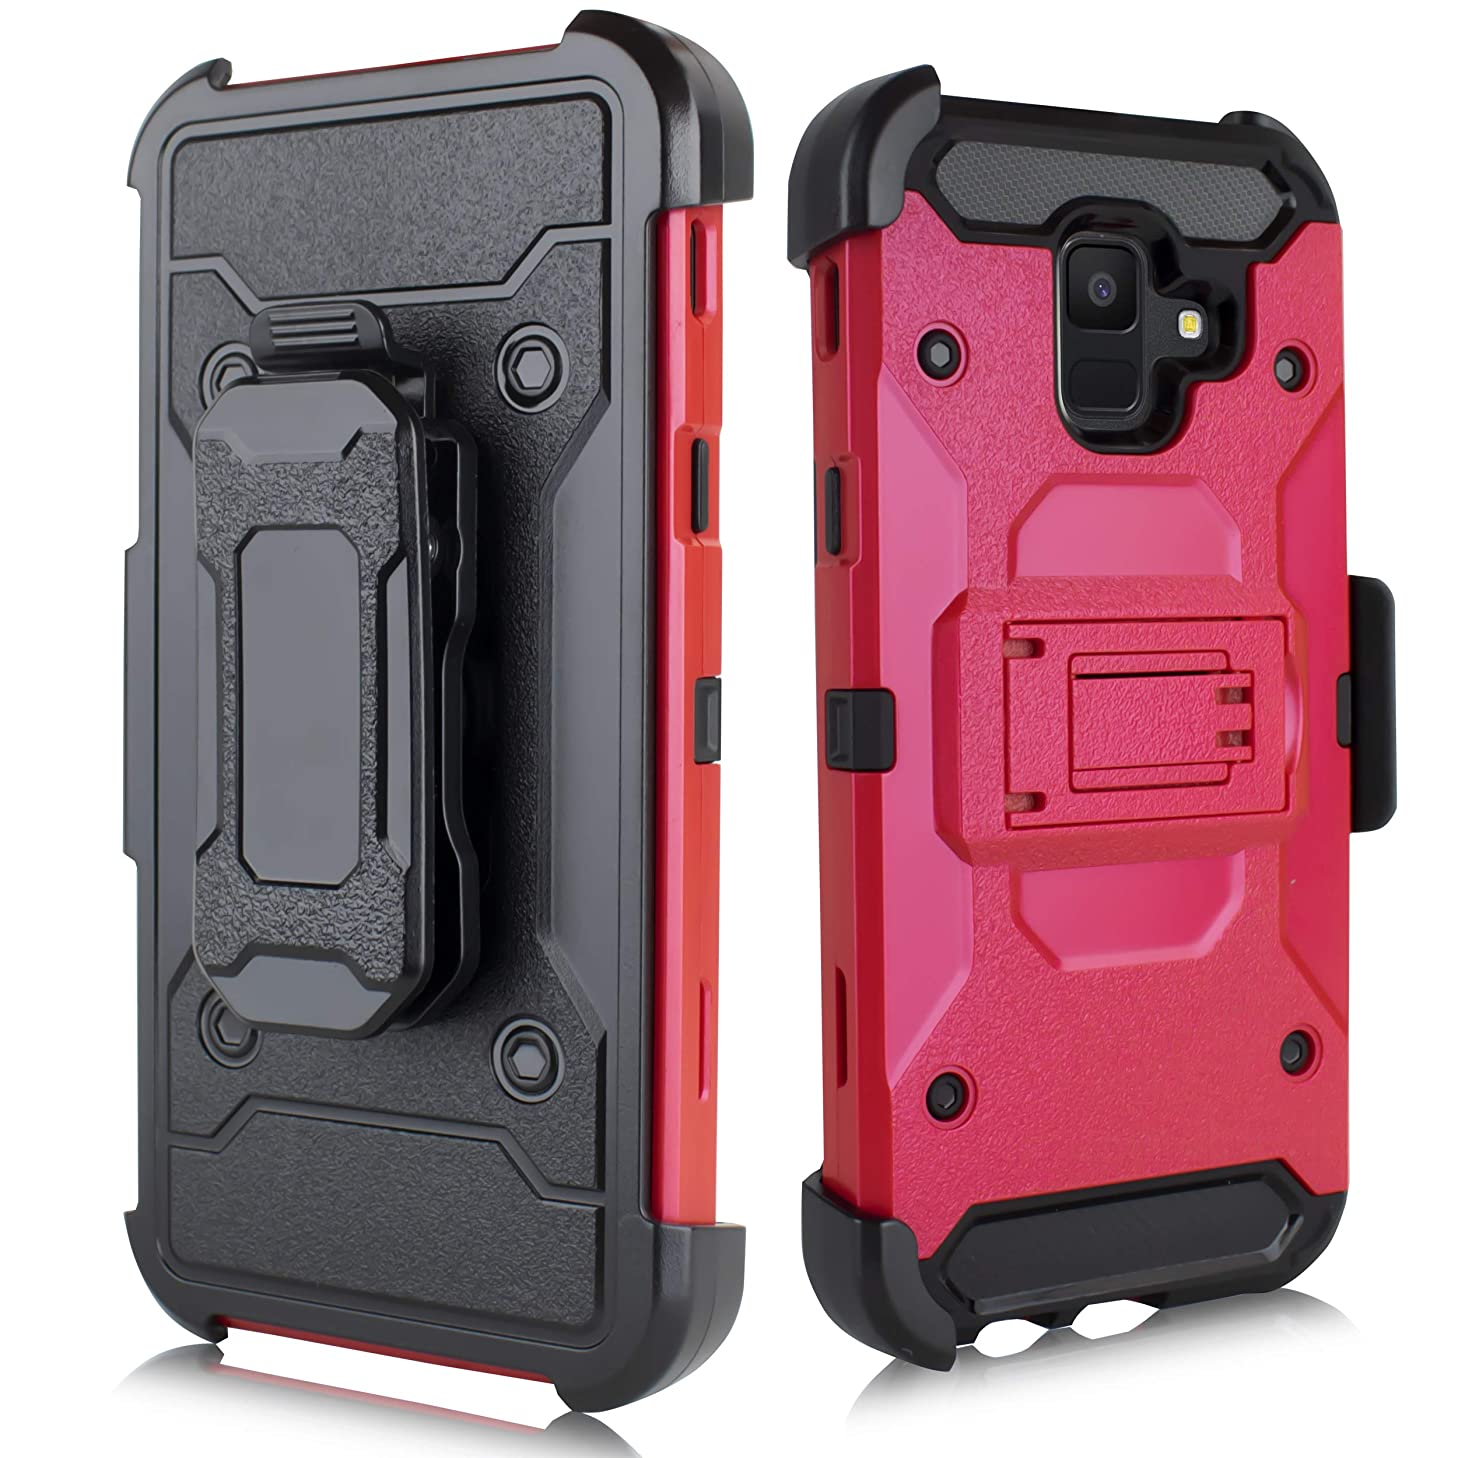 Compatible Samsung Galaxy A6 2018, Holster Case Protection Carrying Belt Clip Drop Proof Shockproof Dustproof Samsung Galaxy A6 SM-A600A 2018 (Red)